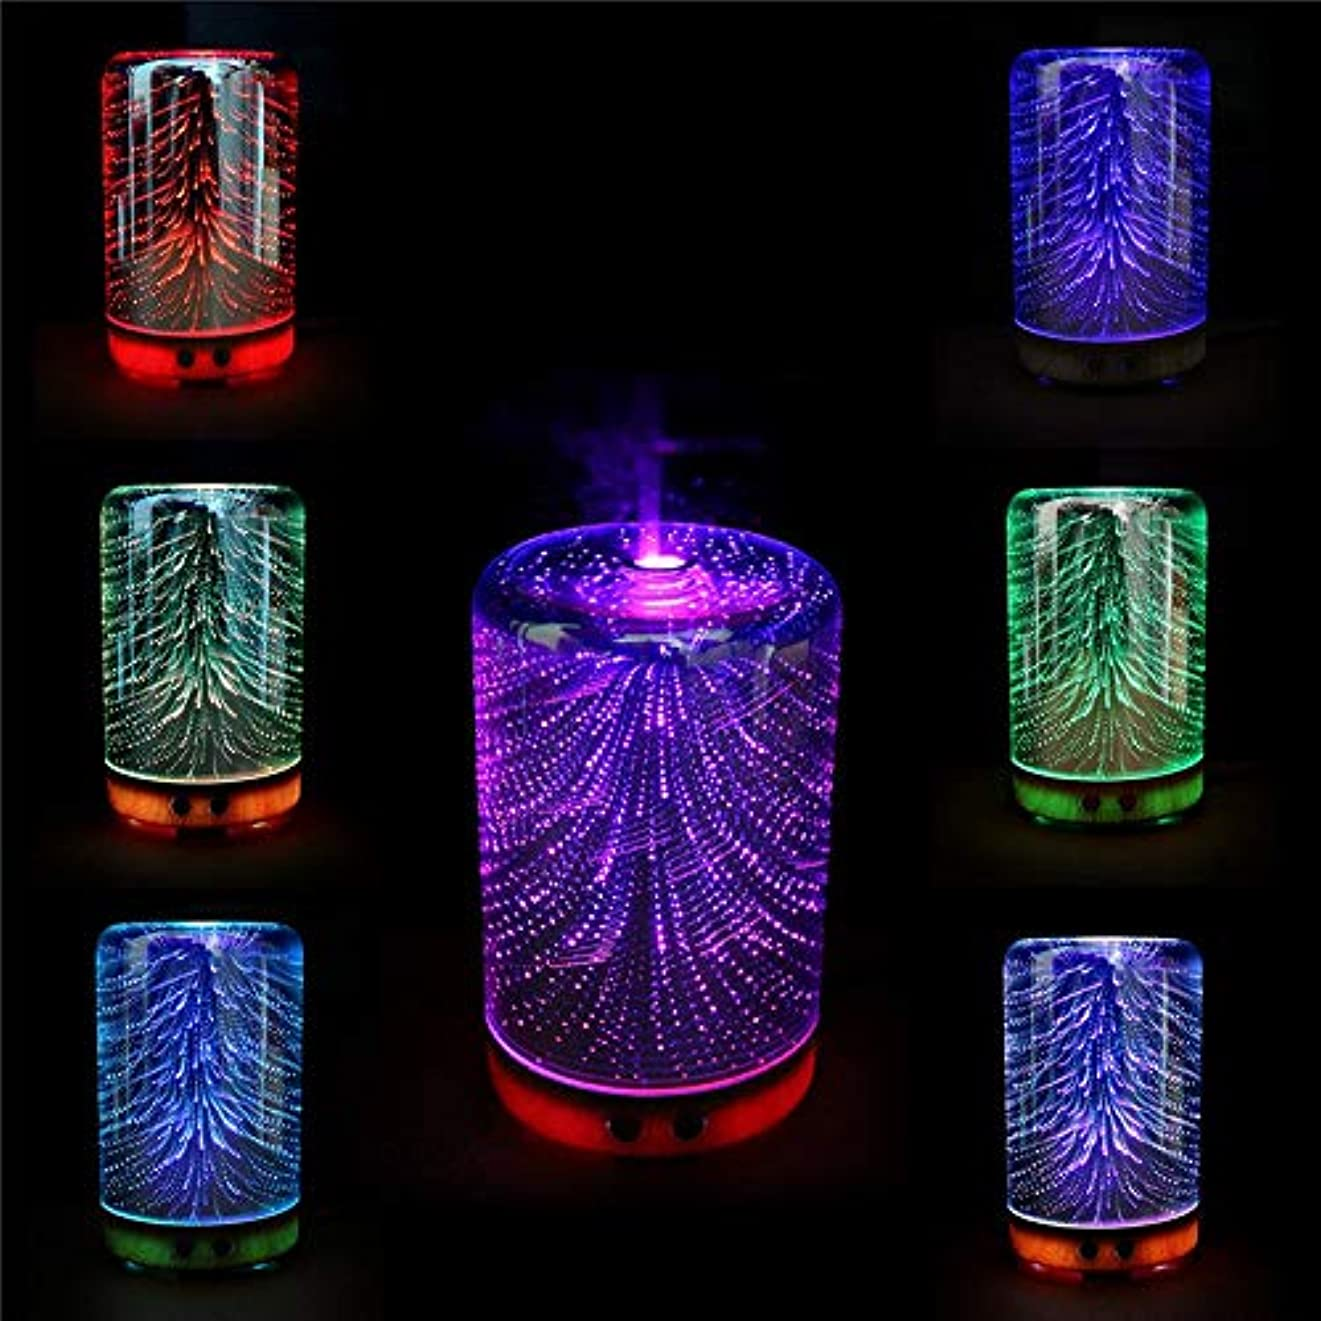 以来勝利徹底Fishagelo Color Changing 3D Lighting Essential Oil Aroma Diffuser Ultrasonic Mist Humidifier Aromatherapy 141[...